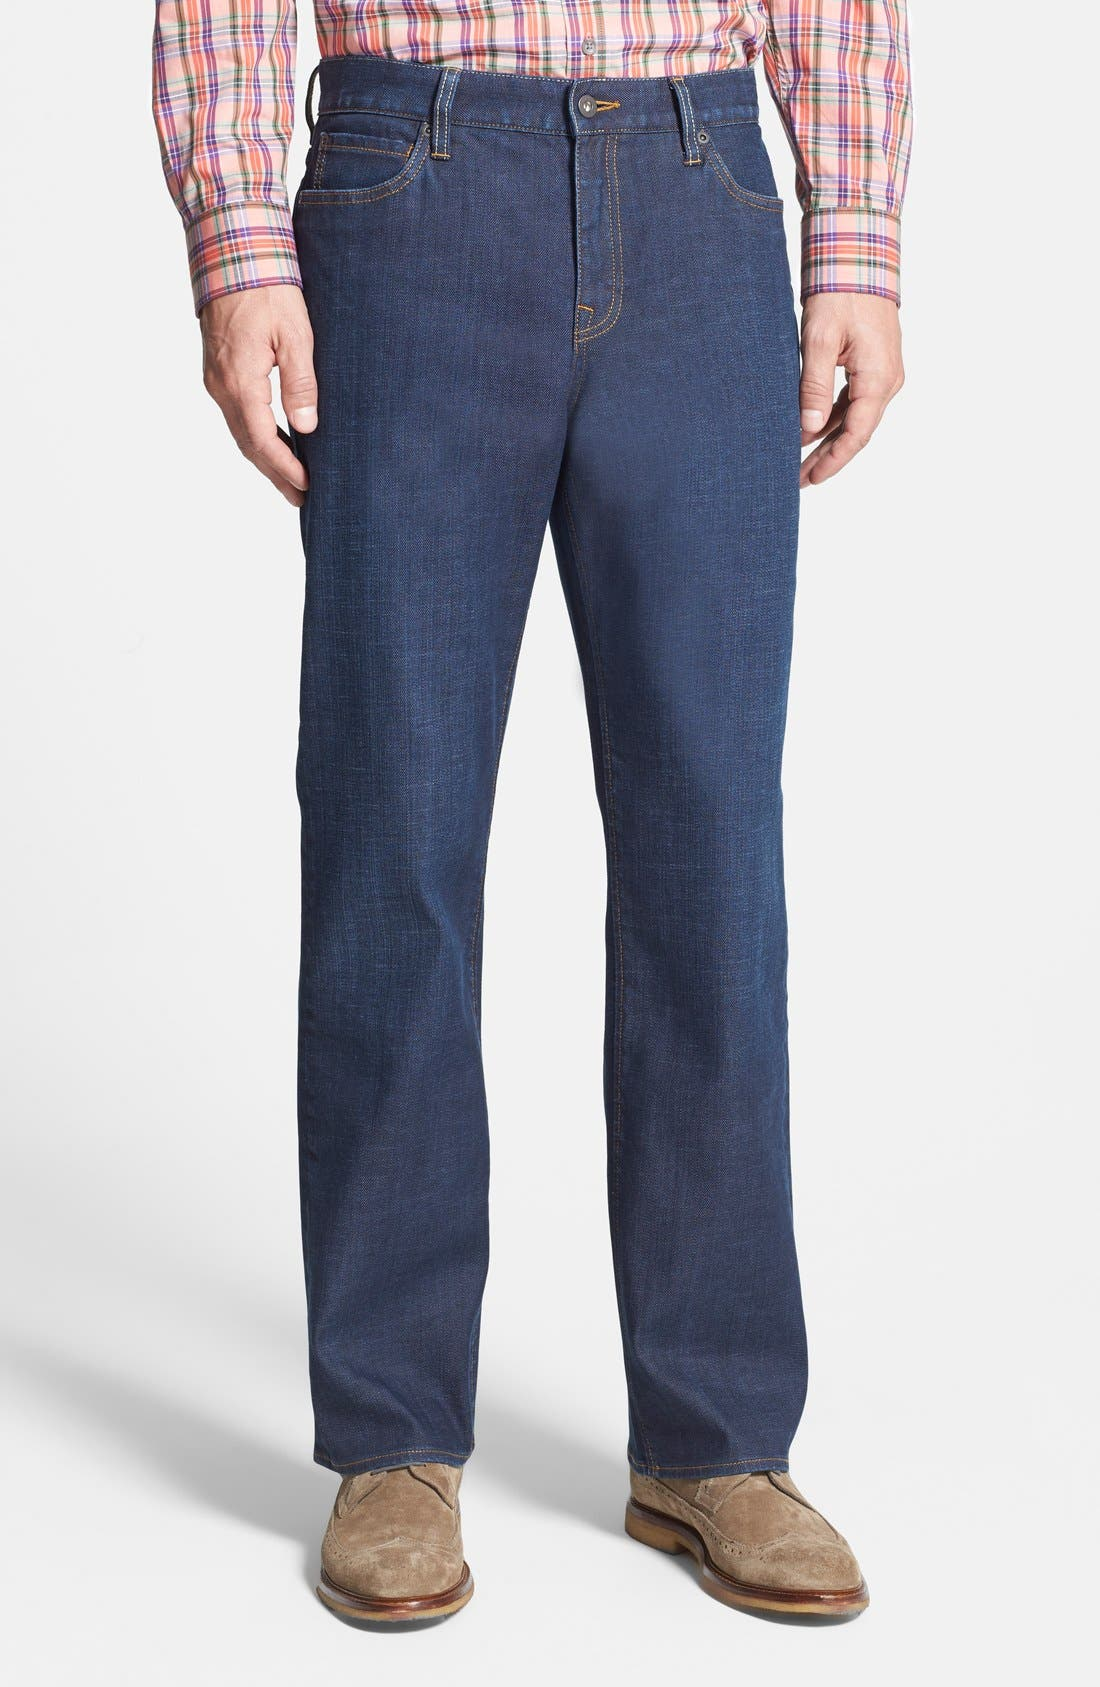 Greenwood Relaxed Fit Jeans,                         Main,                         color, Venice Blue